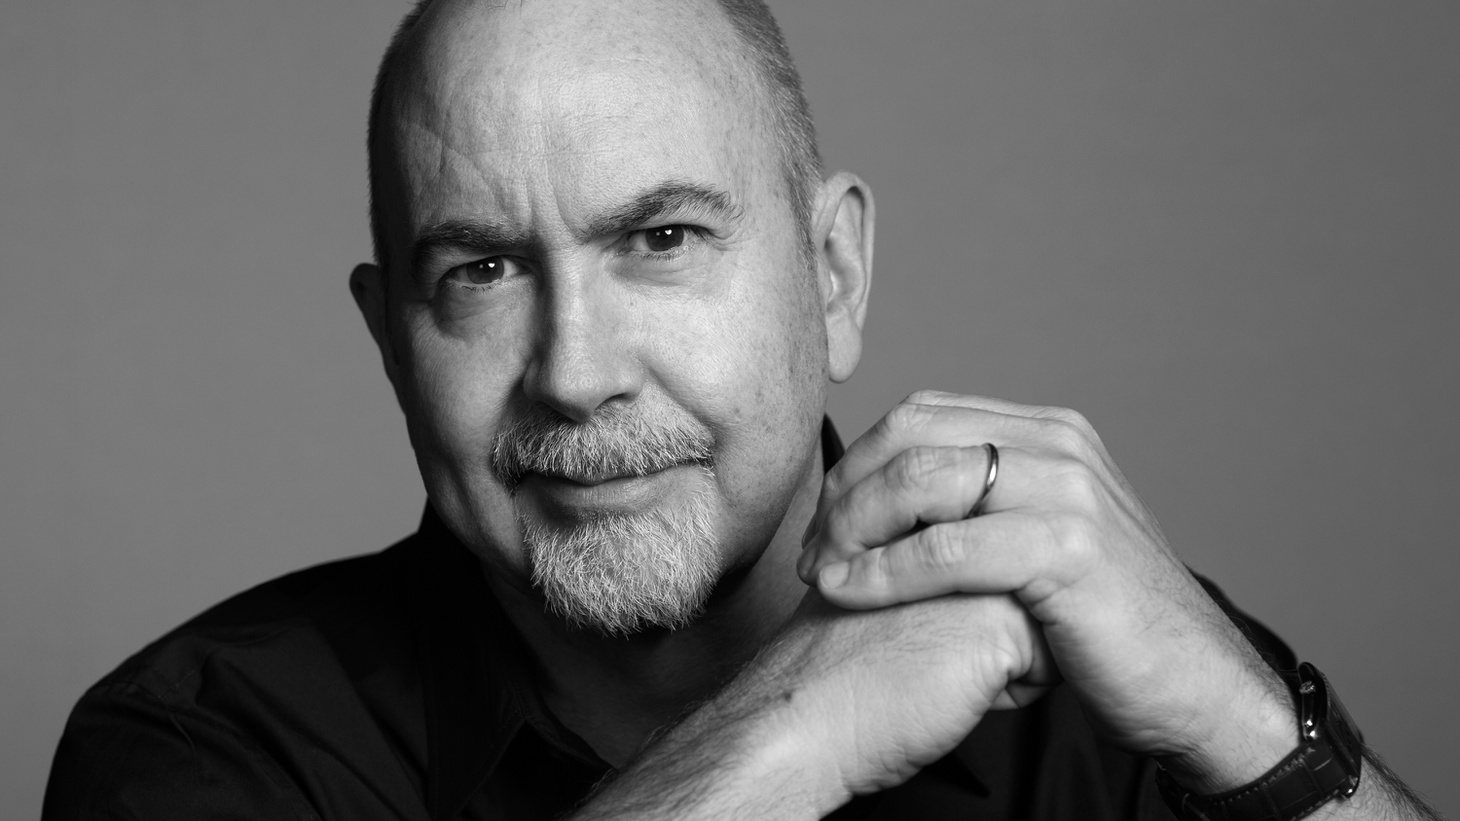 Terence Winter, the co-creator and showrunner of the new HBO series Vinyl, tells us how his roots in Brooklyn and stint practicing law both helped him -- in a roundabout way -- land big writing jobs in Hollywood.